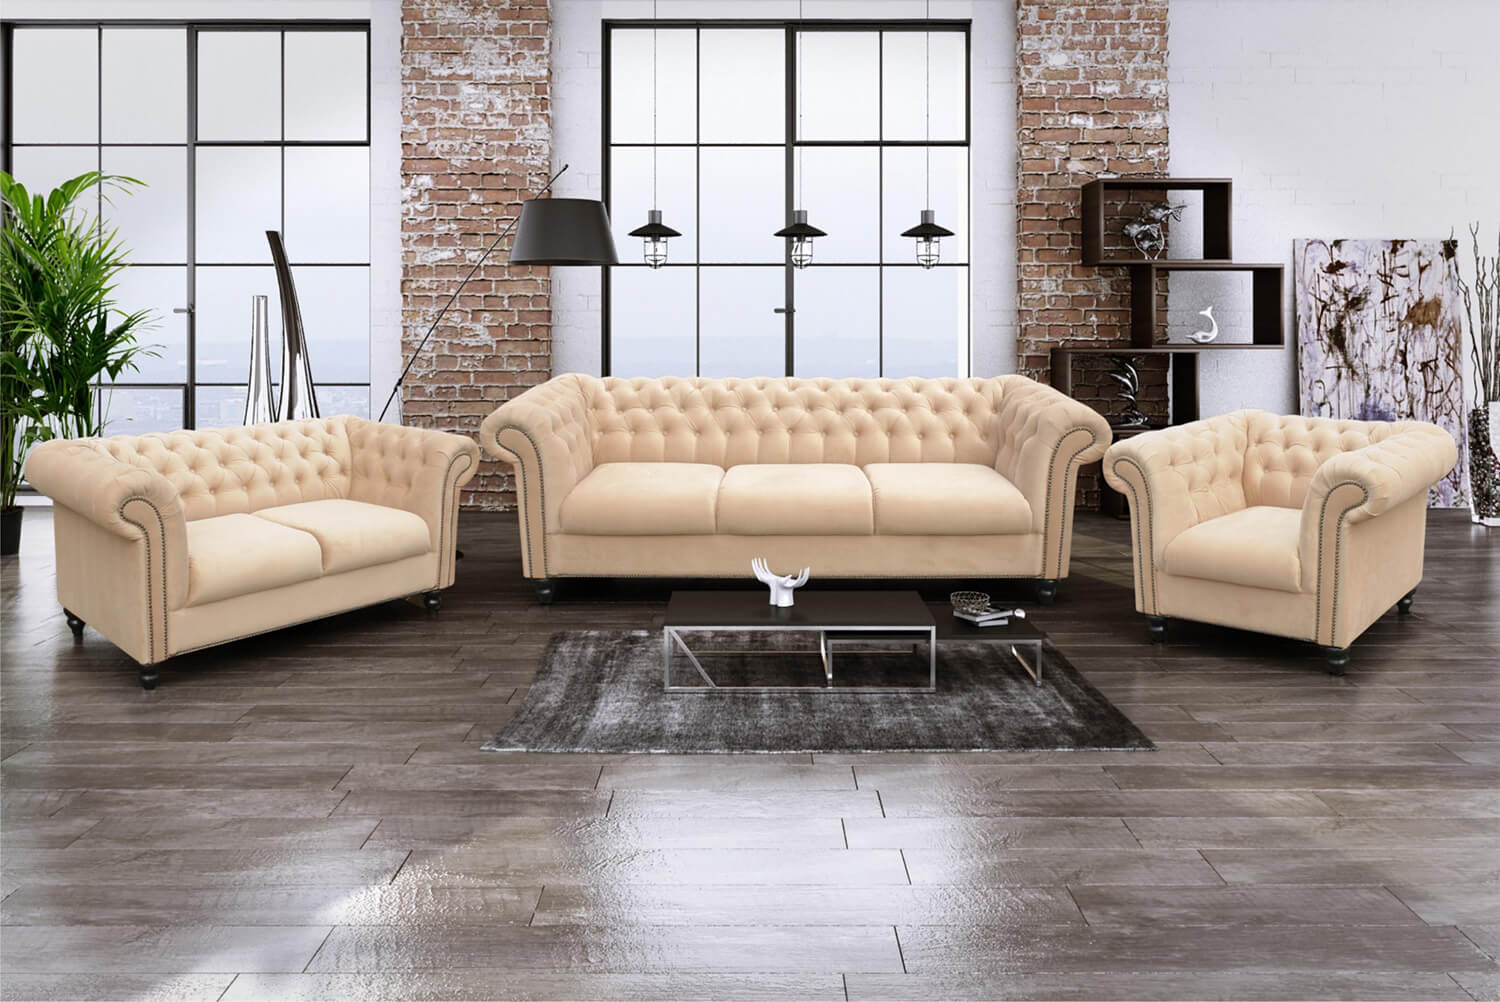 https://www.excluzive.se/wp-content/uploads/2020/07/Chesterfield-Soffgrupp-Beige.jpg